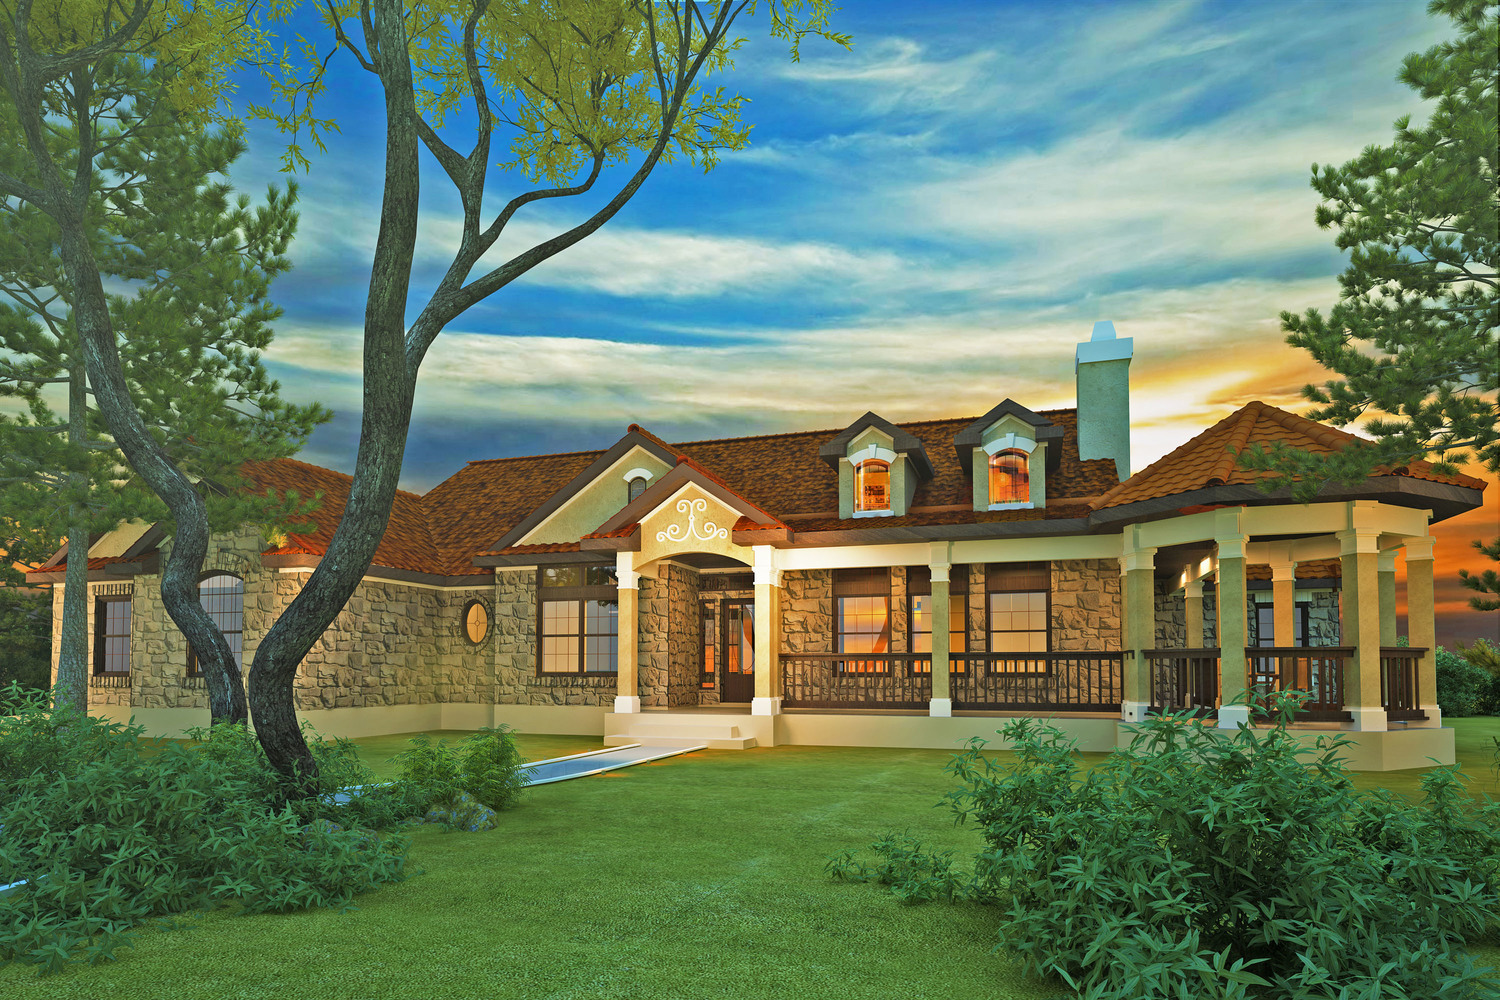 4 Bedroom House Plans Open Floor Ranch Square Feet